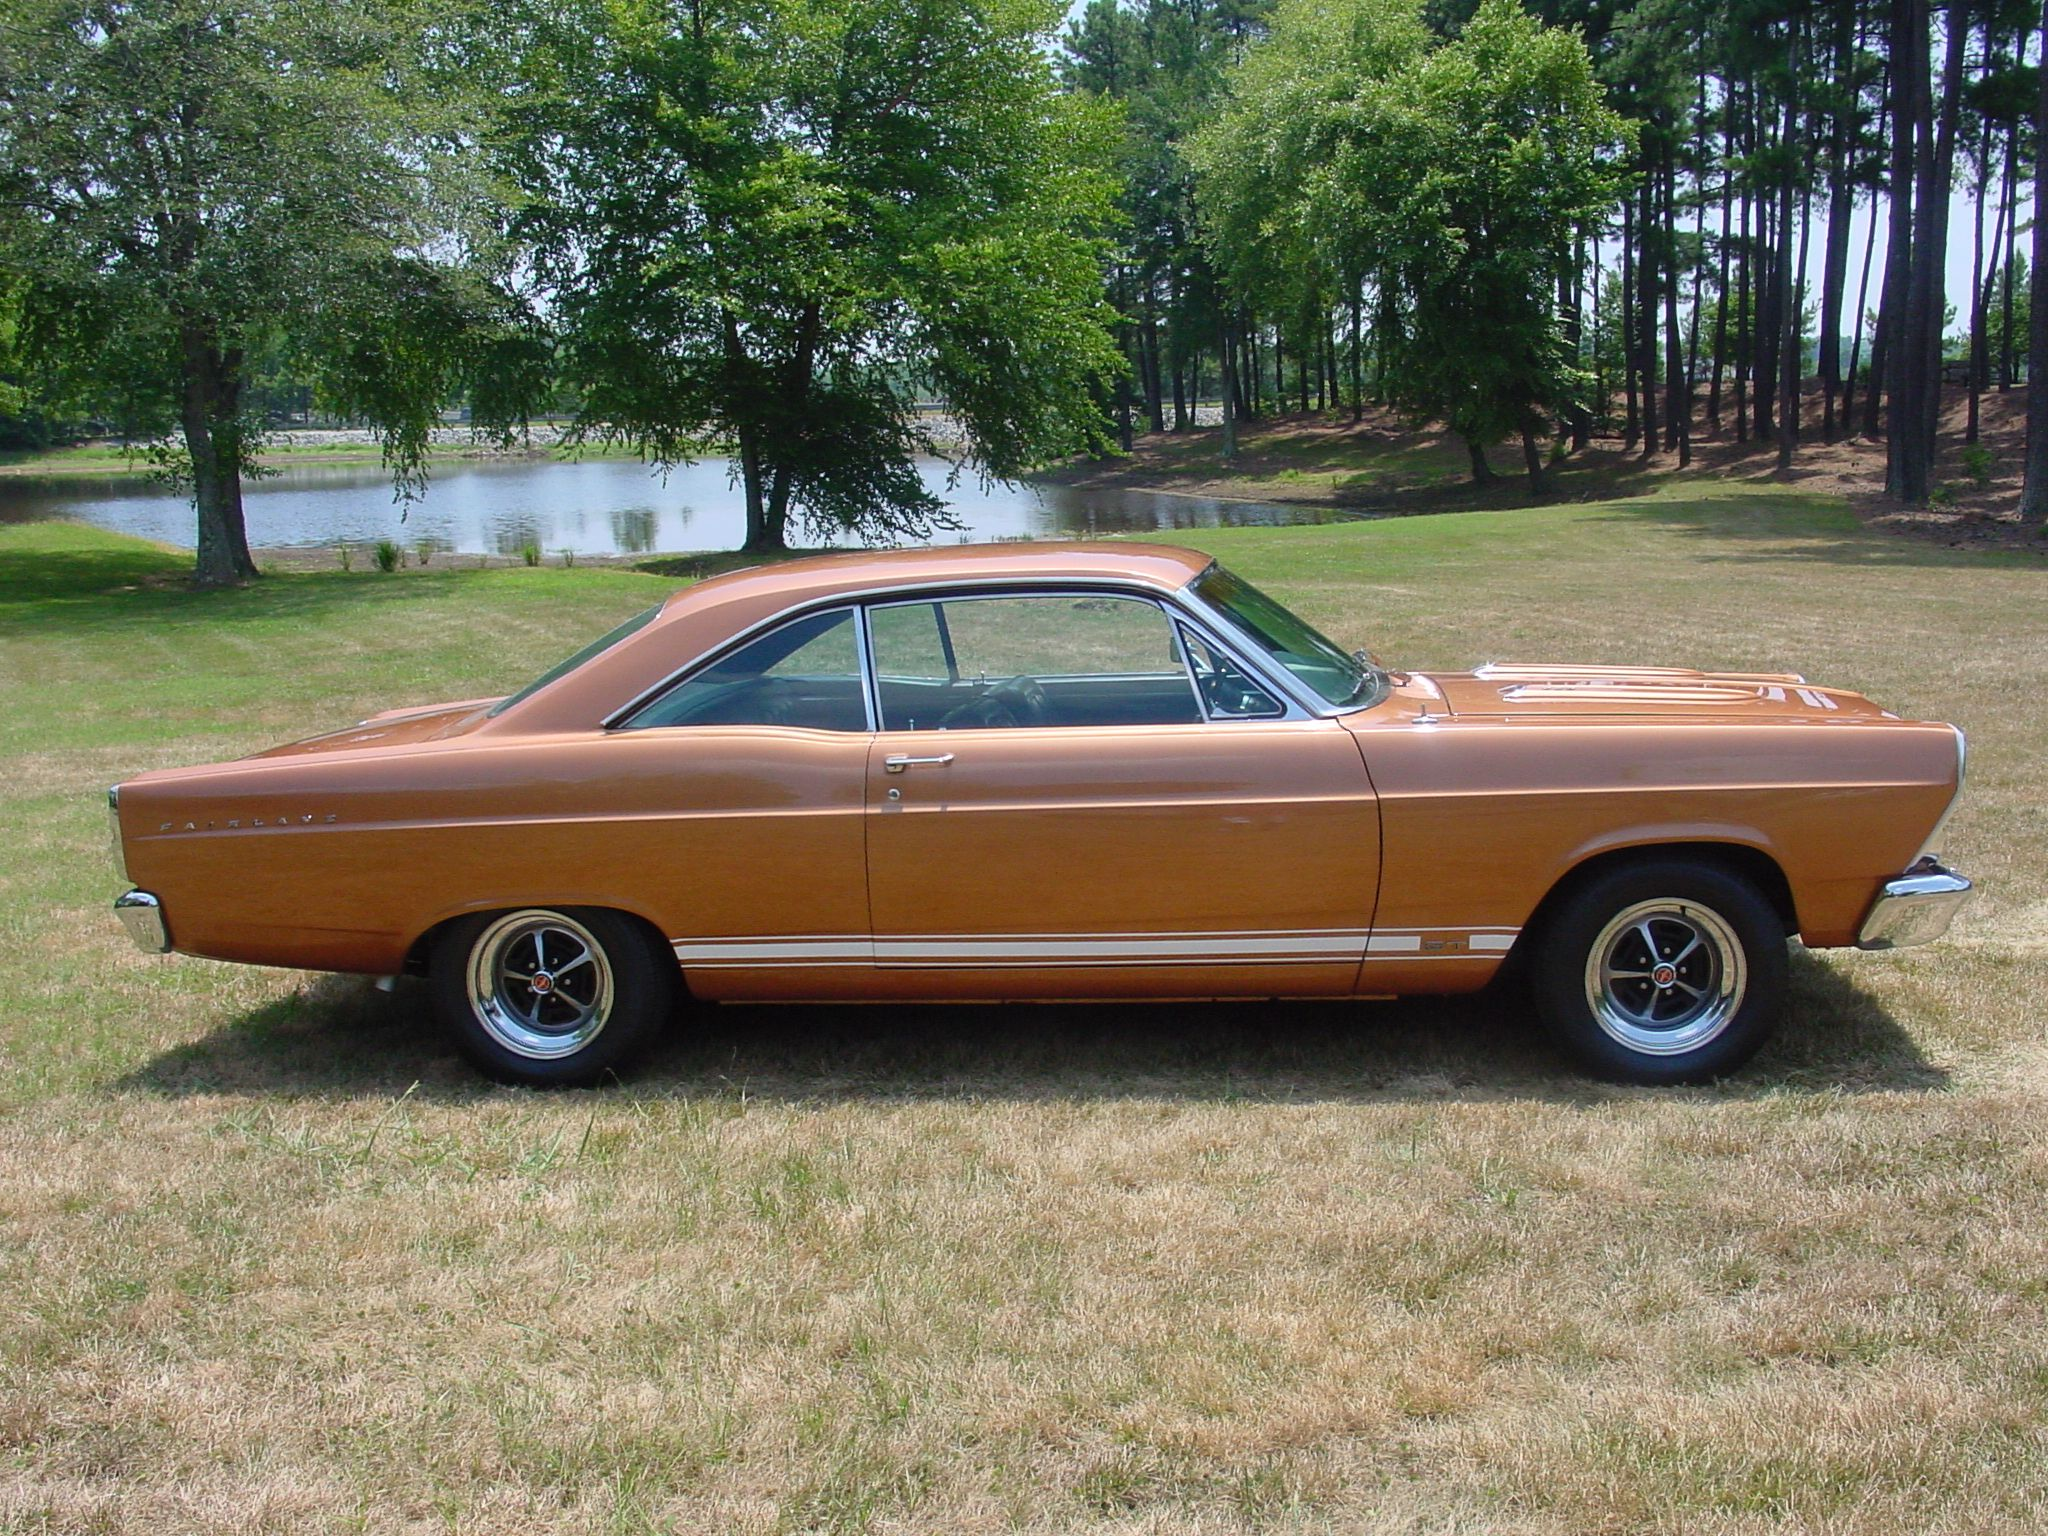 1967 Ford Fairlane Gt Two Door Hardtop Ford Fairlane Ford